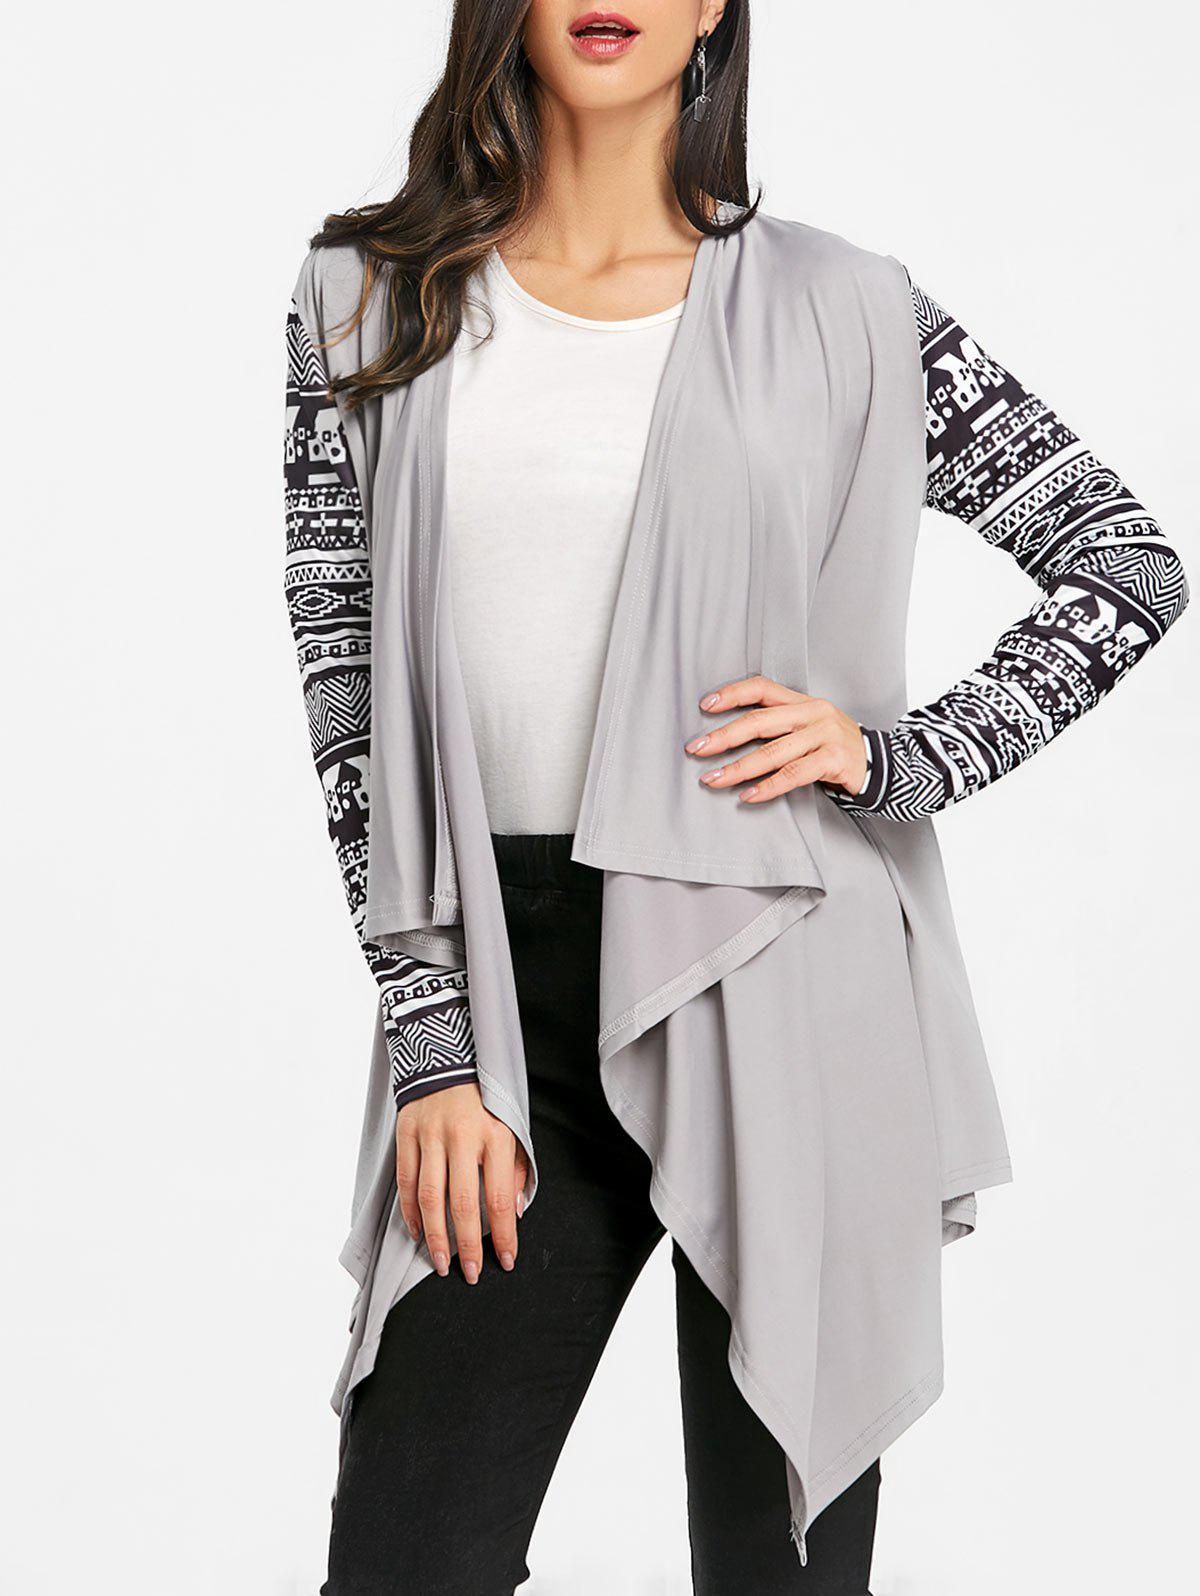 Tribal Print Sleeve Draped Asymmetric Cardigan - GRAY 2XL